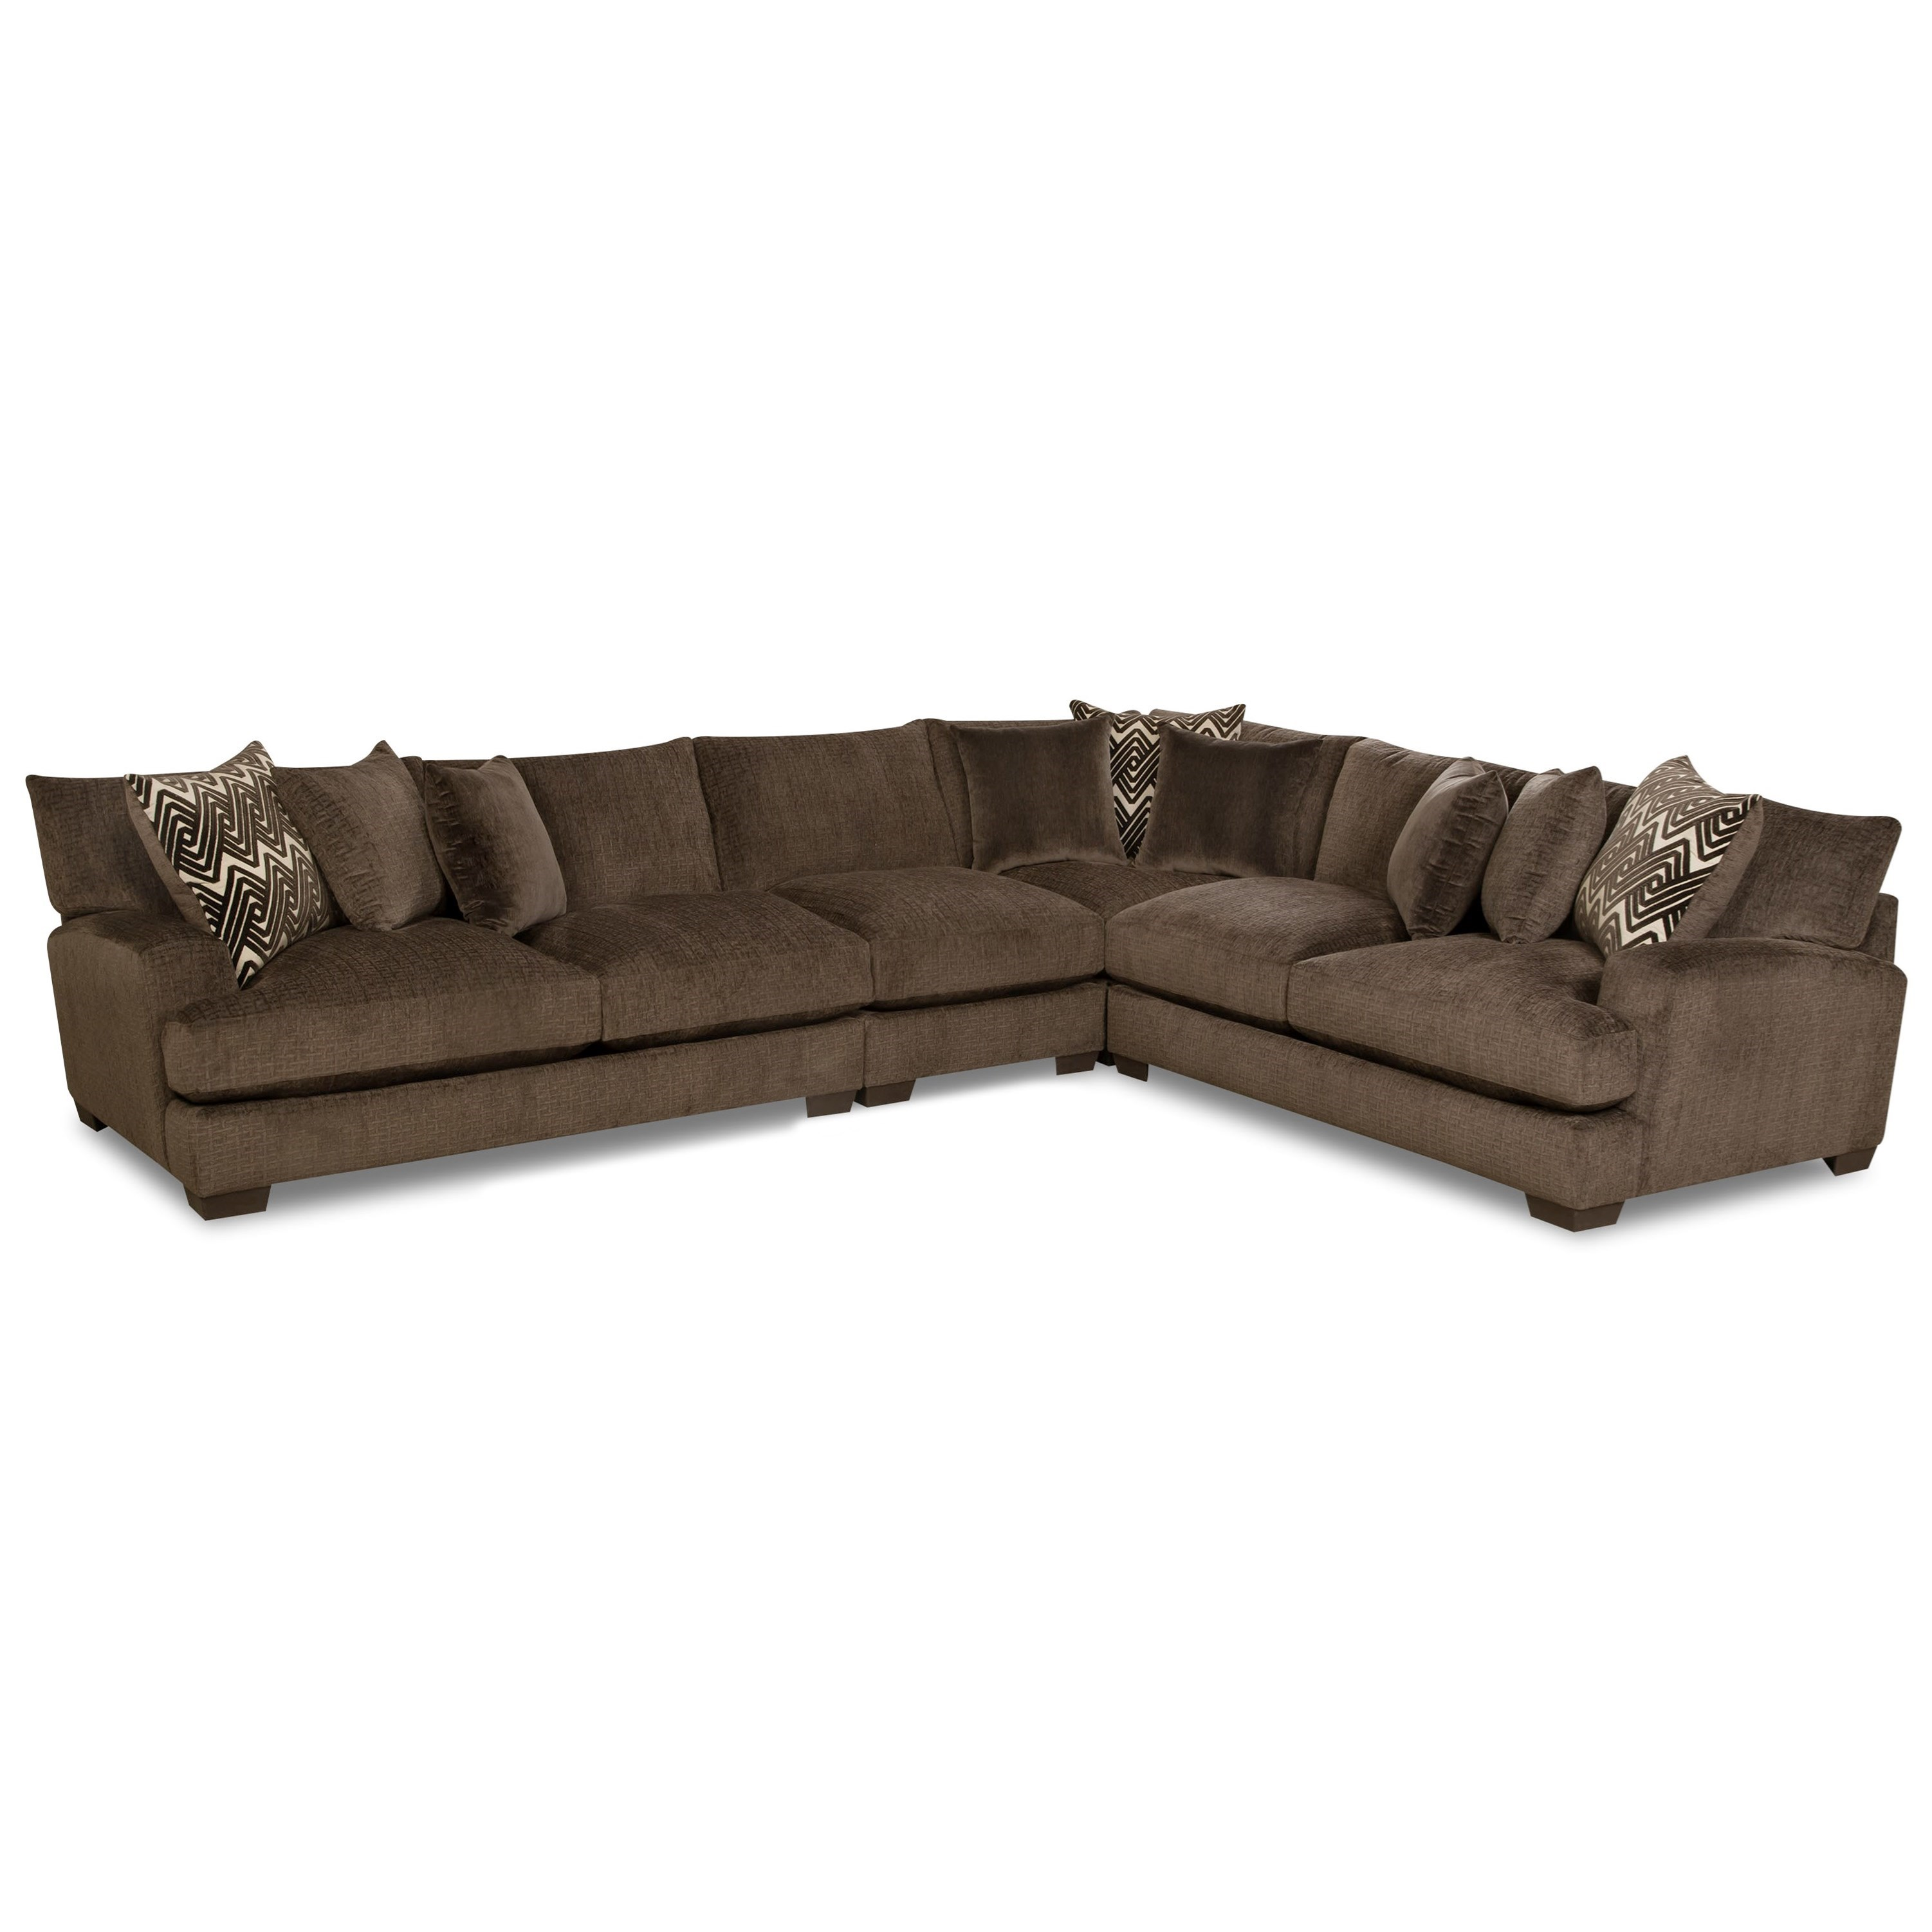 American Furniture 1600 5 Seat Sectional - Item Number: 1610+1611+1604+1640-5442